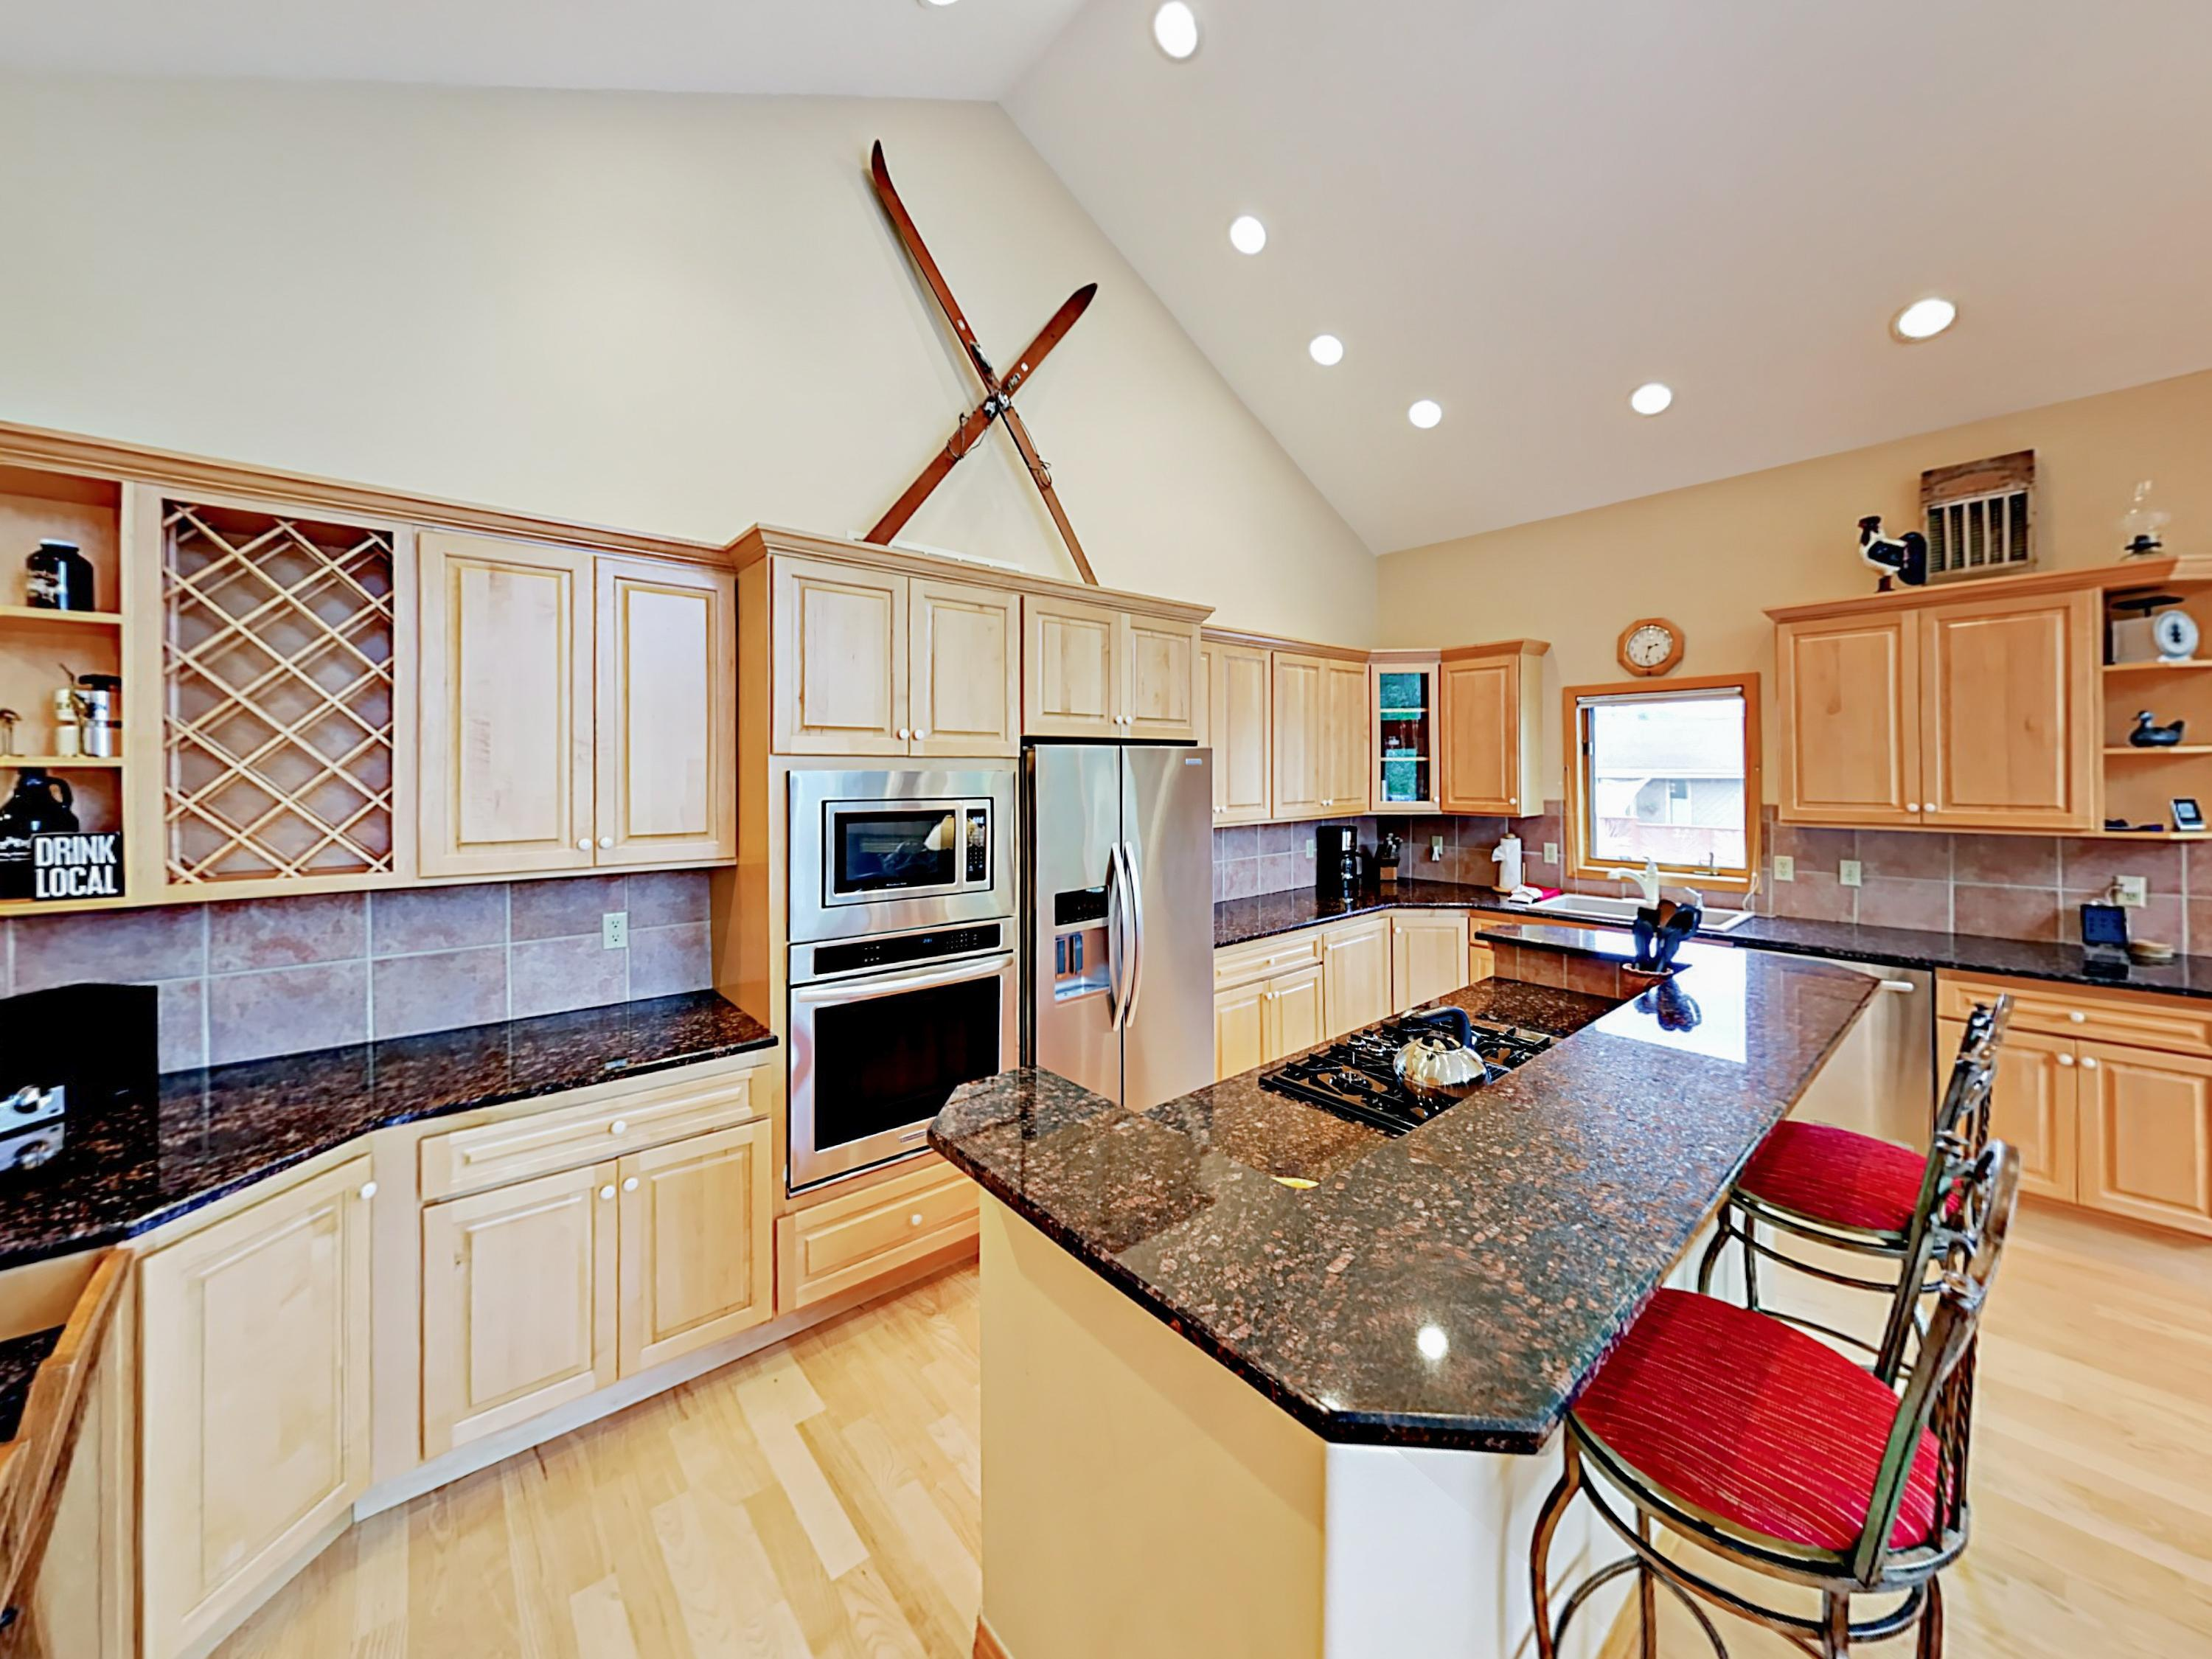 The massive granite-lined kitchen has stainless steel appliances and a 2-person breakfast bar.